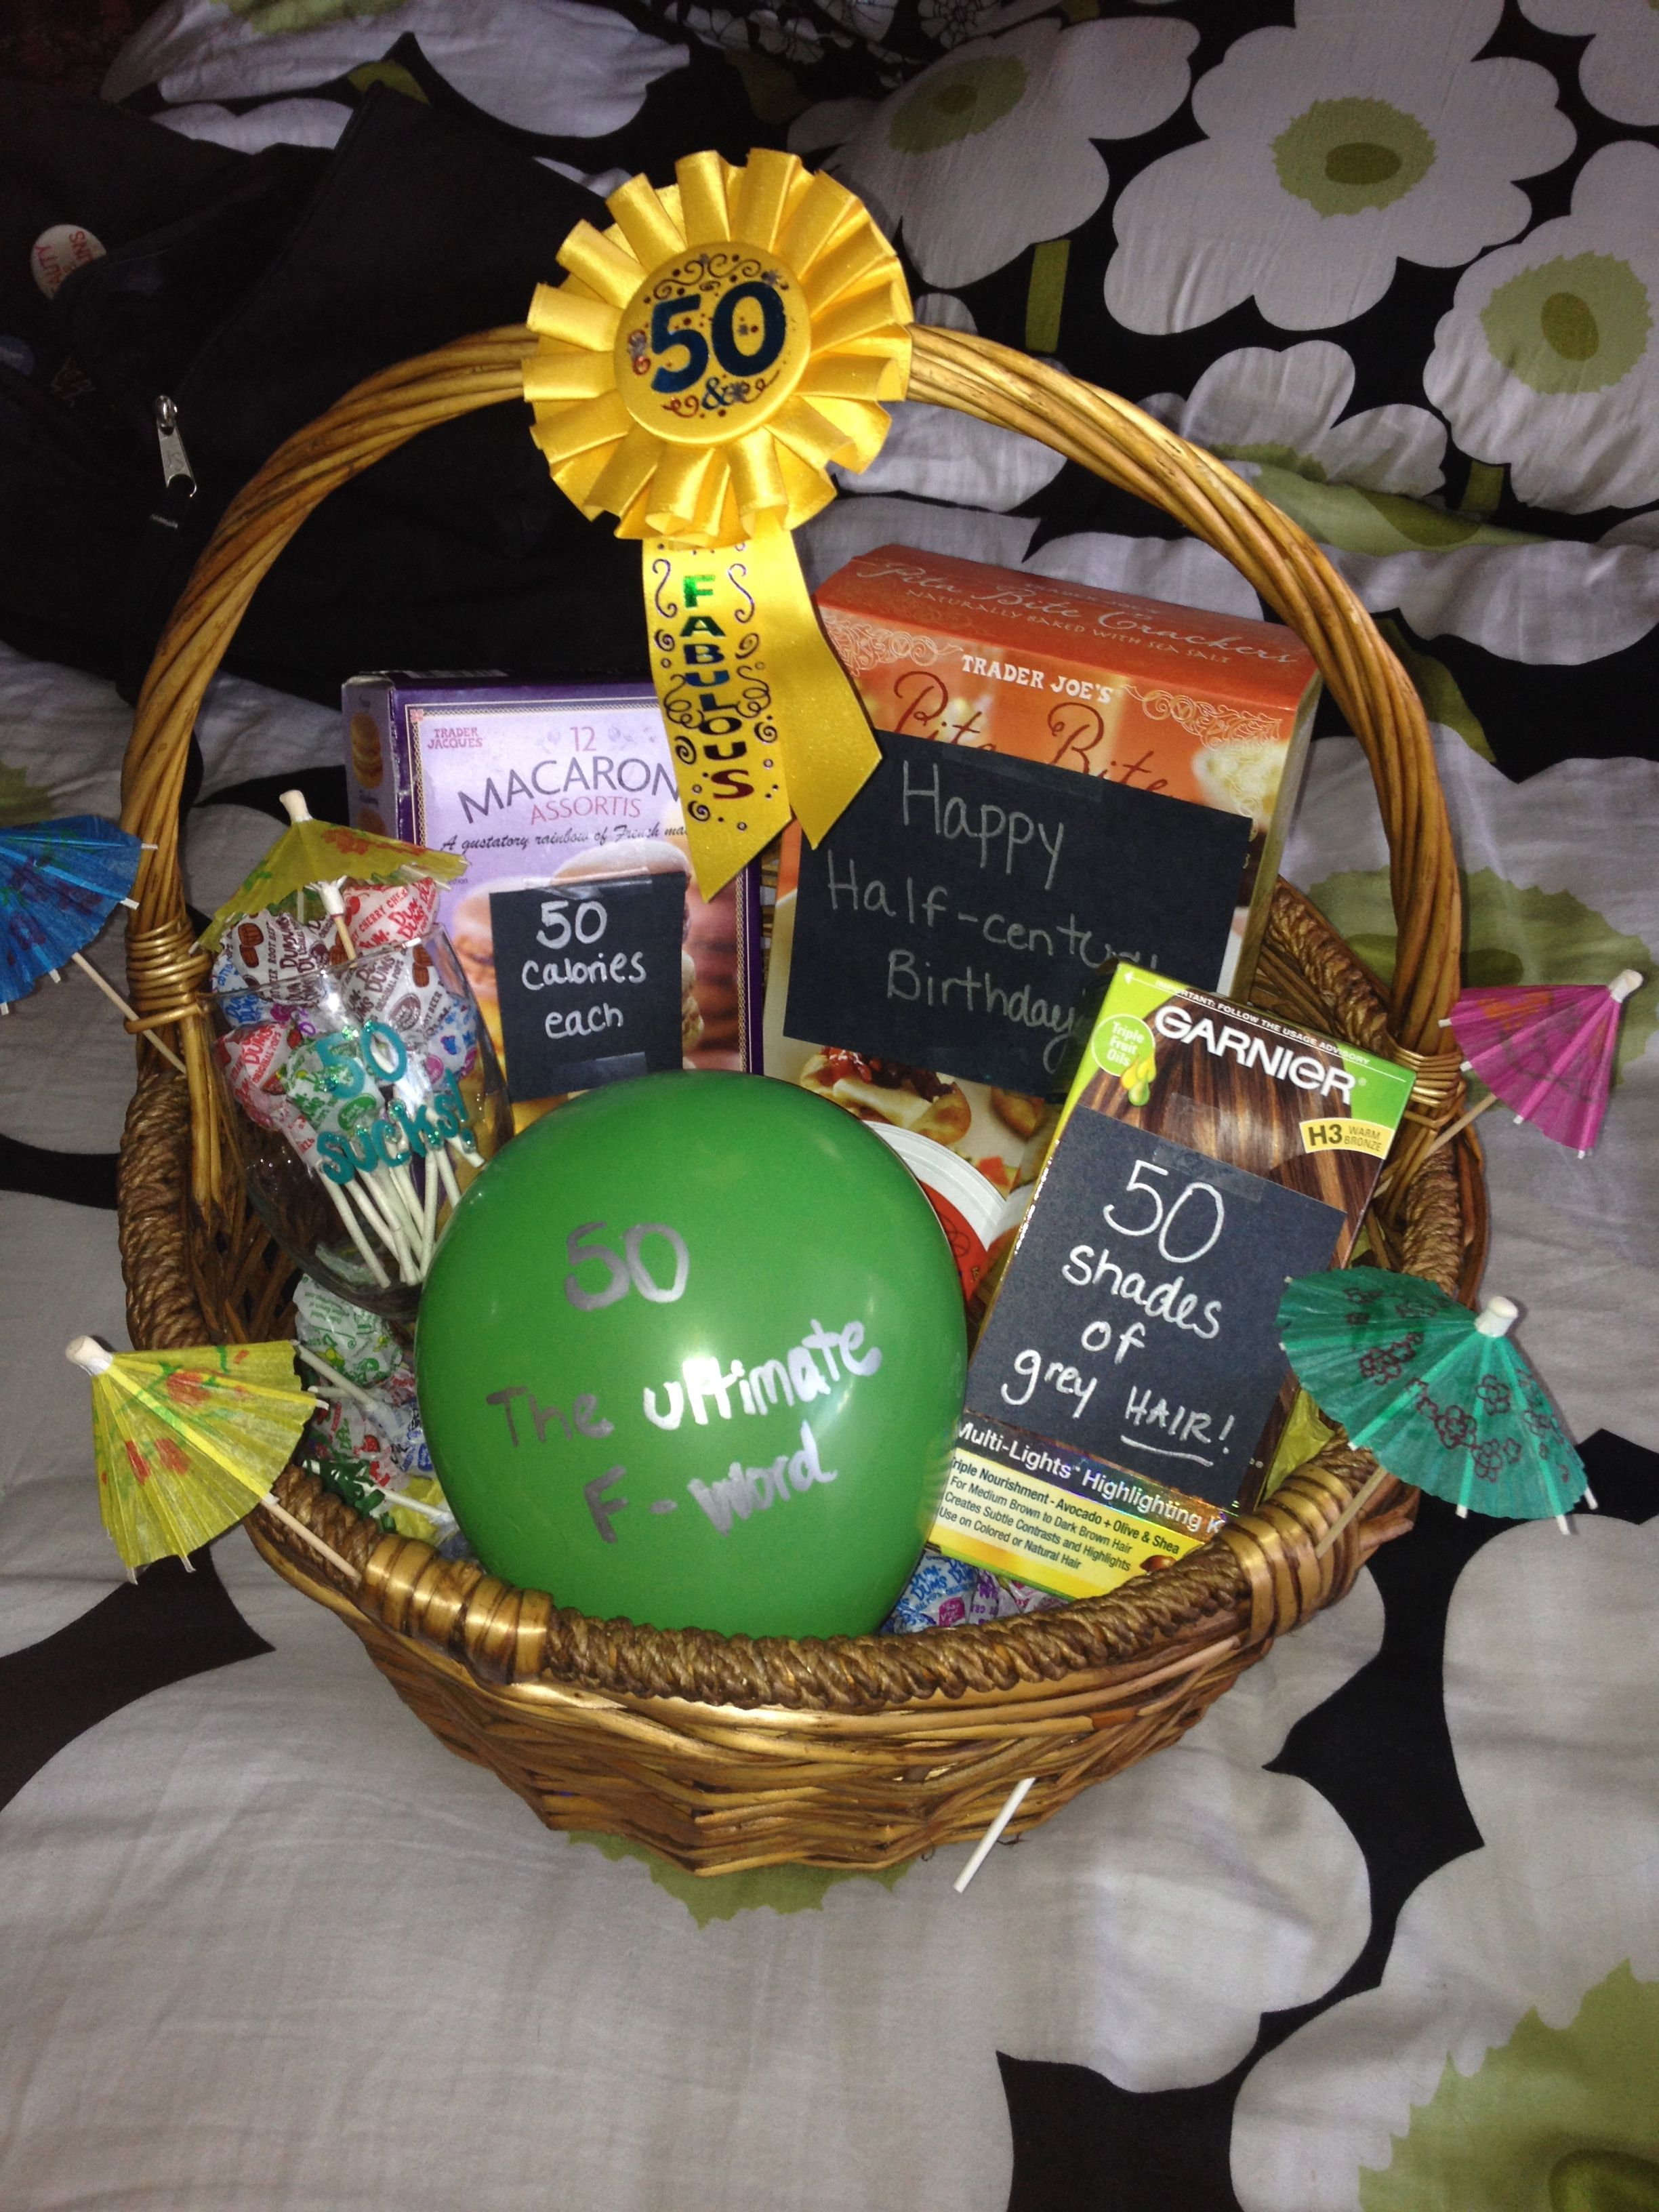 Fun 50th Birthday Gift Basket For My Mom I Just Filled It With Some Of Her